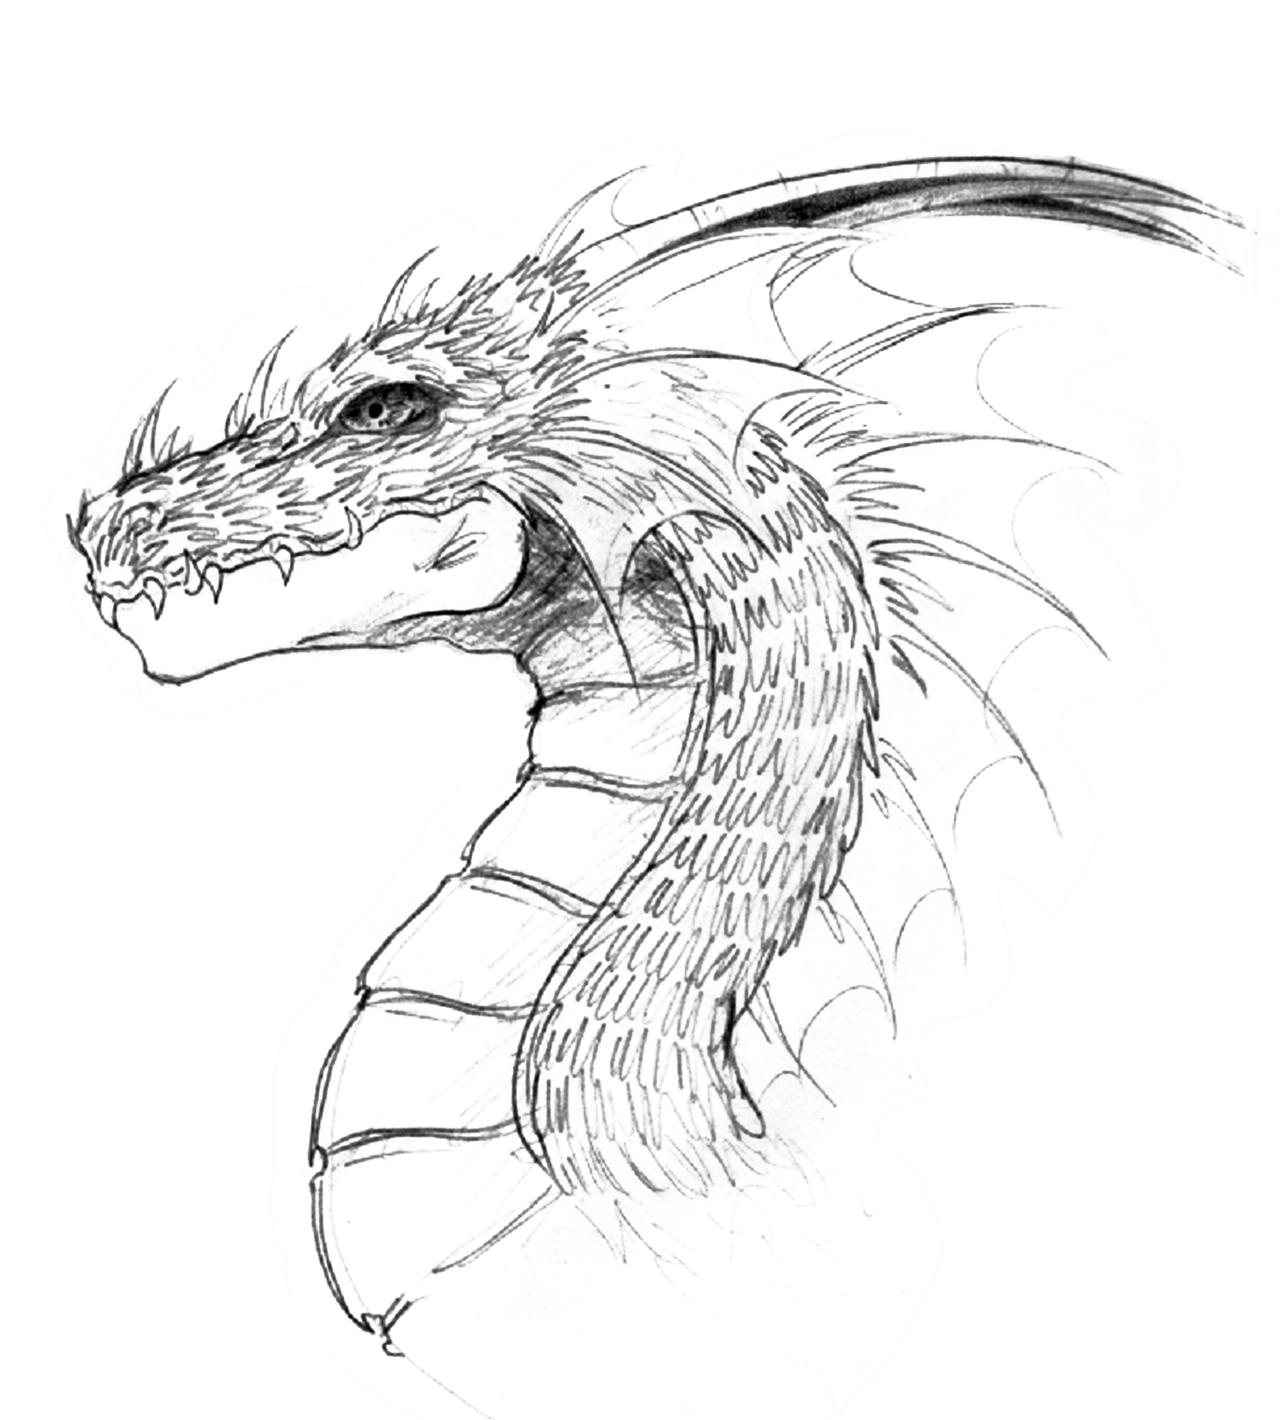 dragon drawing easy best ideas about easy dragon drawings on pinterest dragons easy dragon drawing